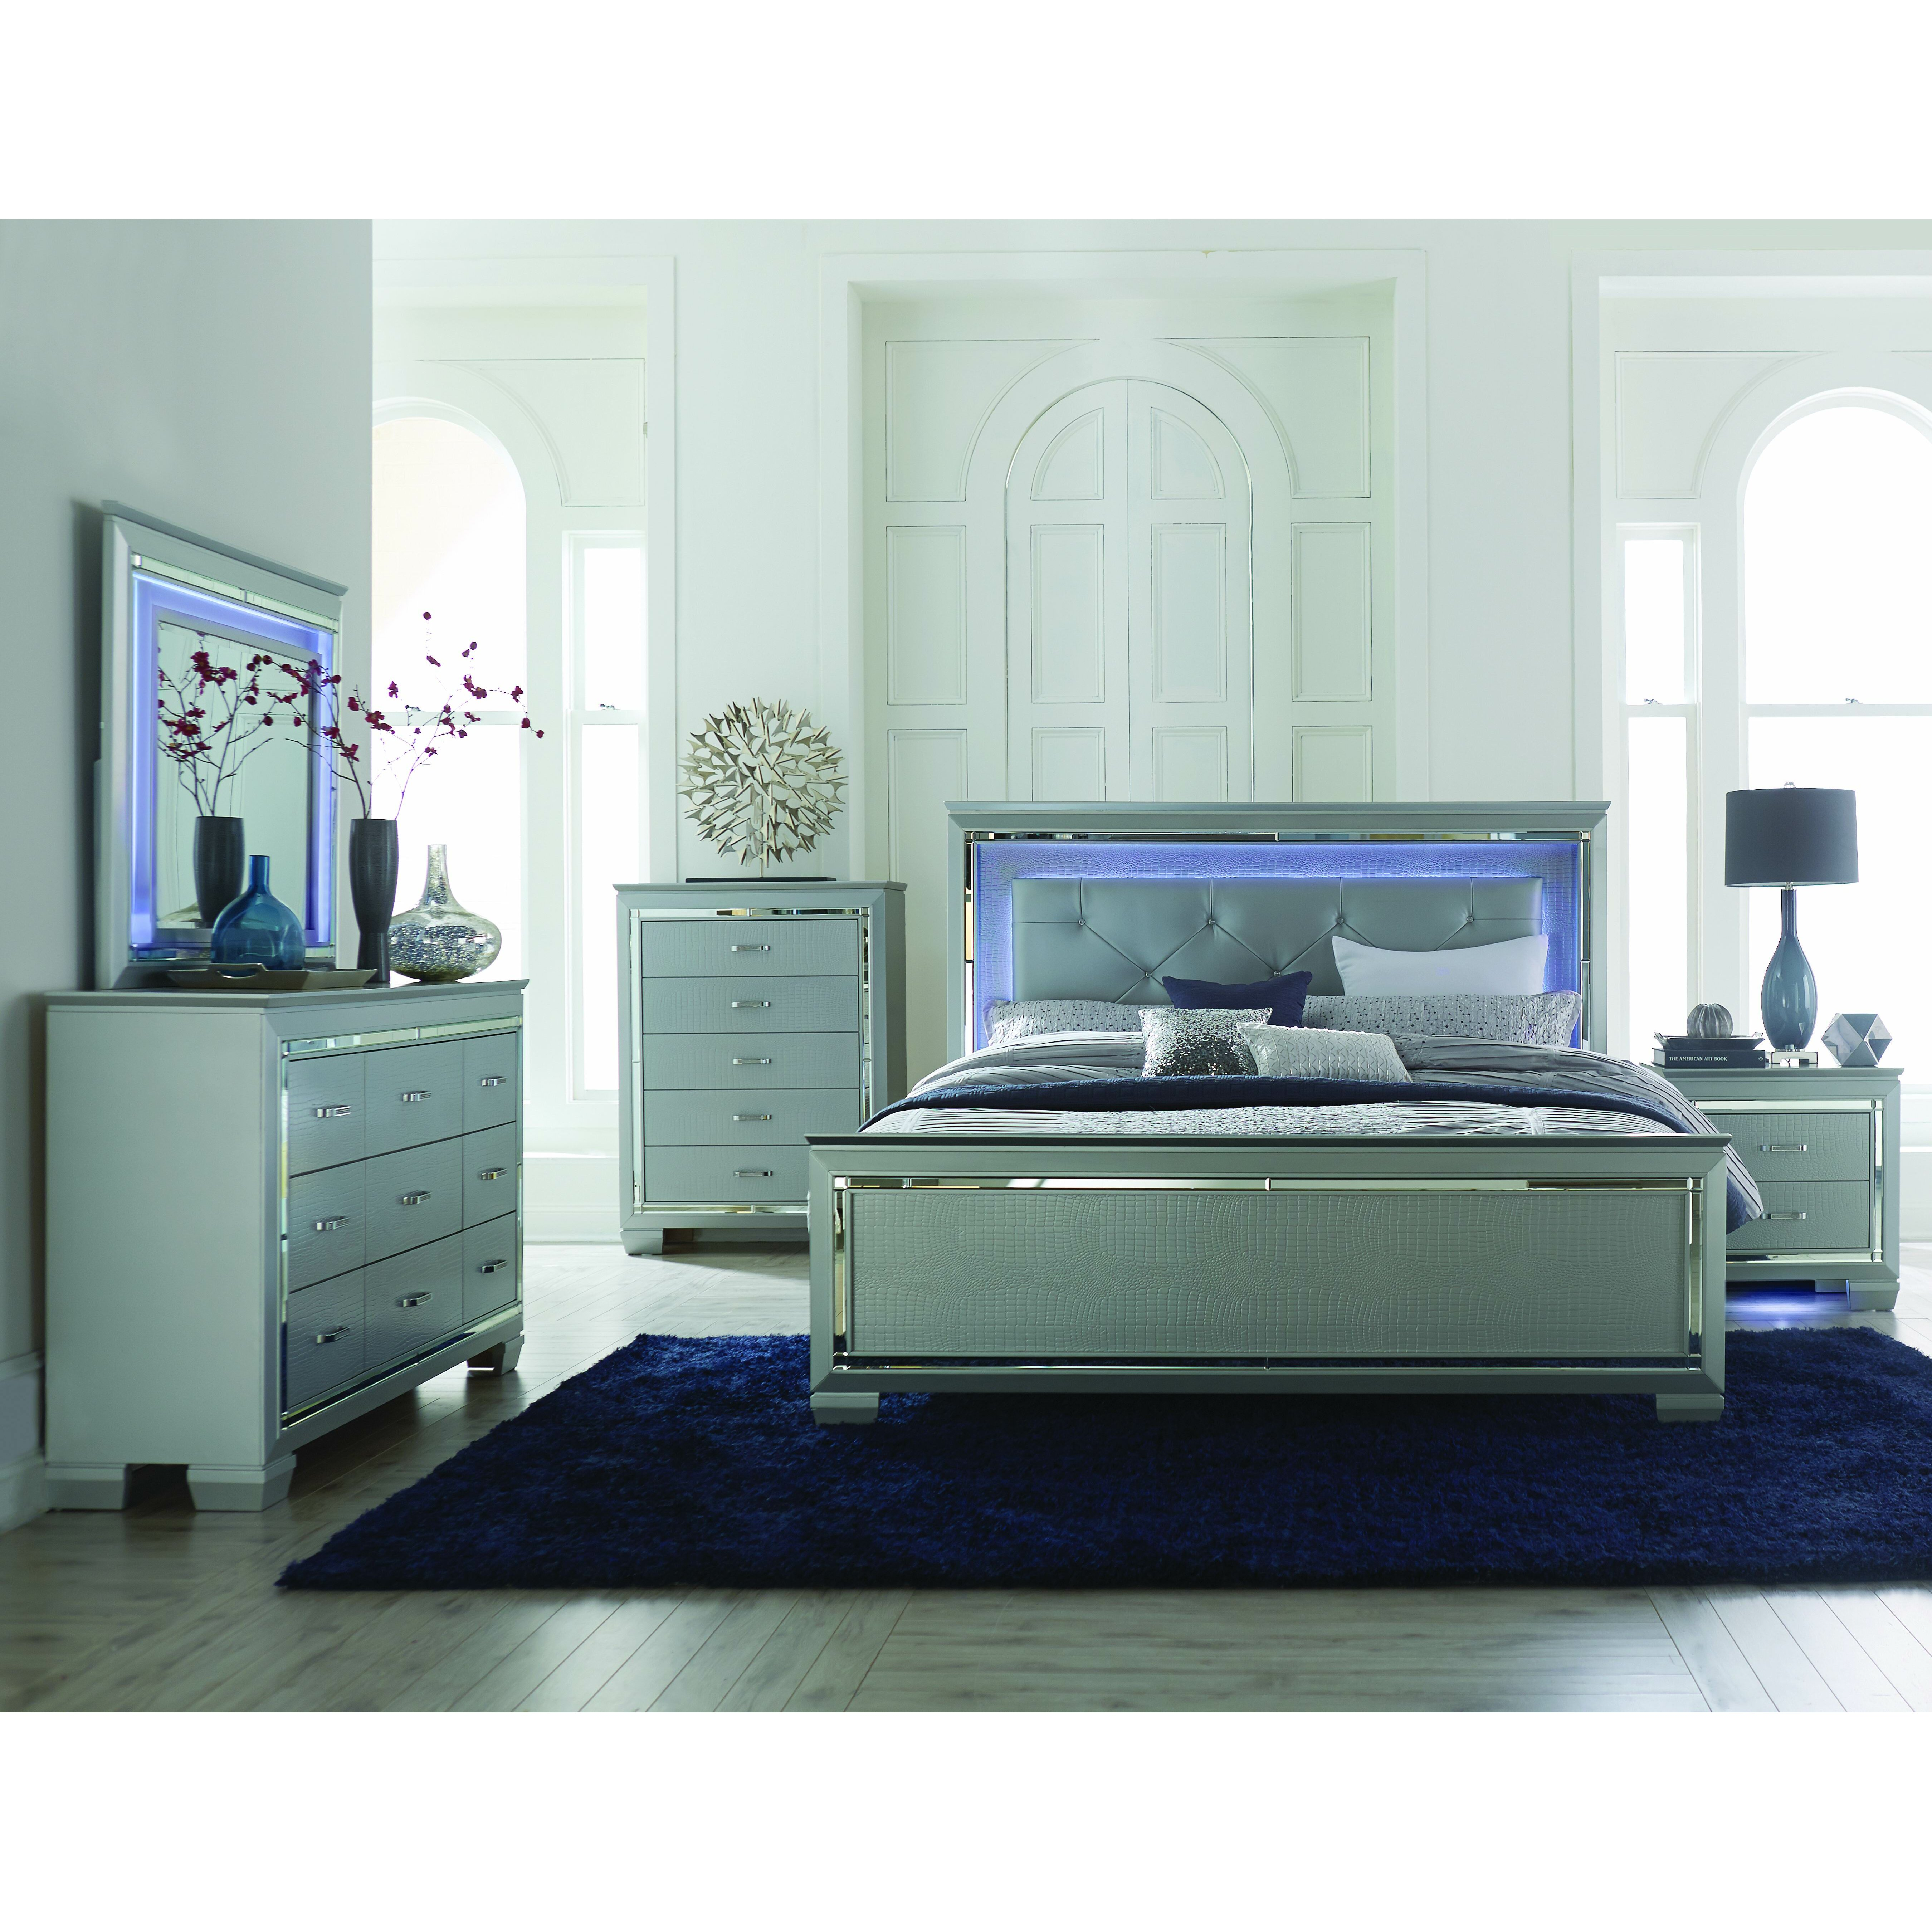 Homelegance Allura Panel Customizable Bedroom Set. Homelegance Allura Panel Customizable Bedroom Set   Reviews   Wayfair